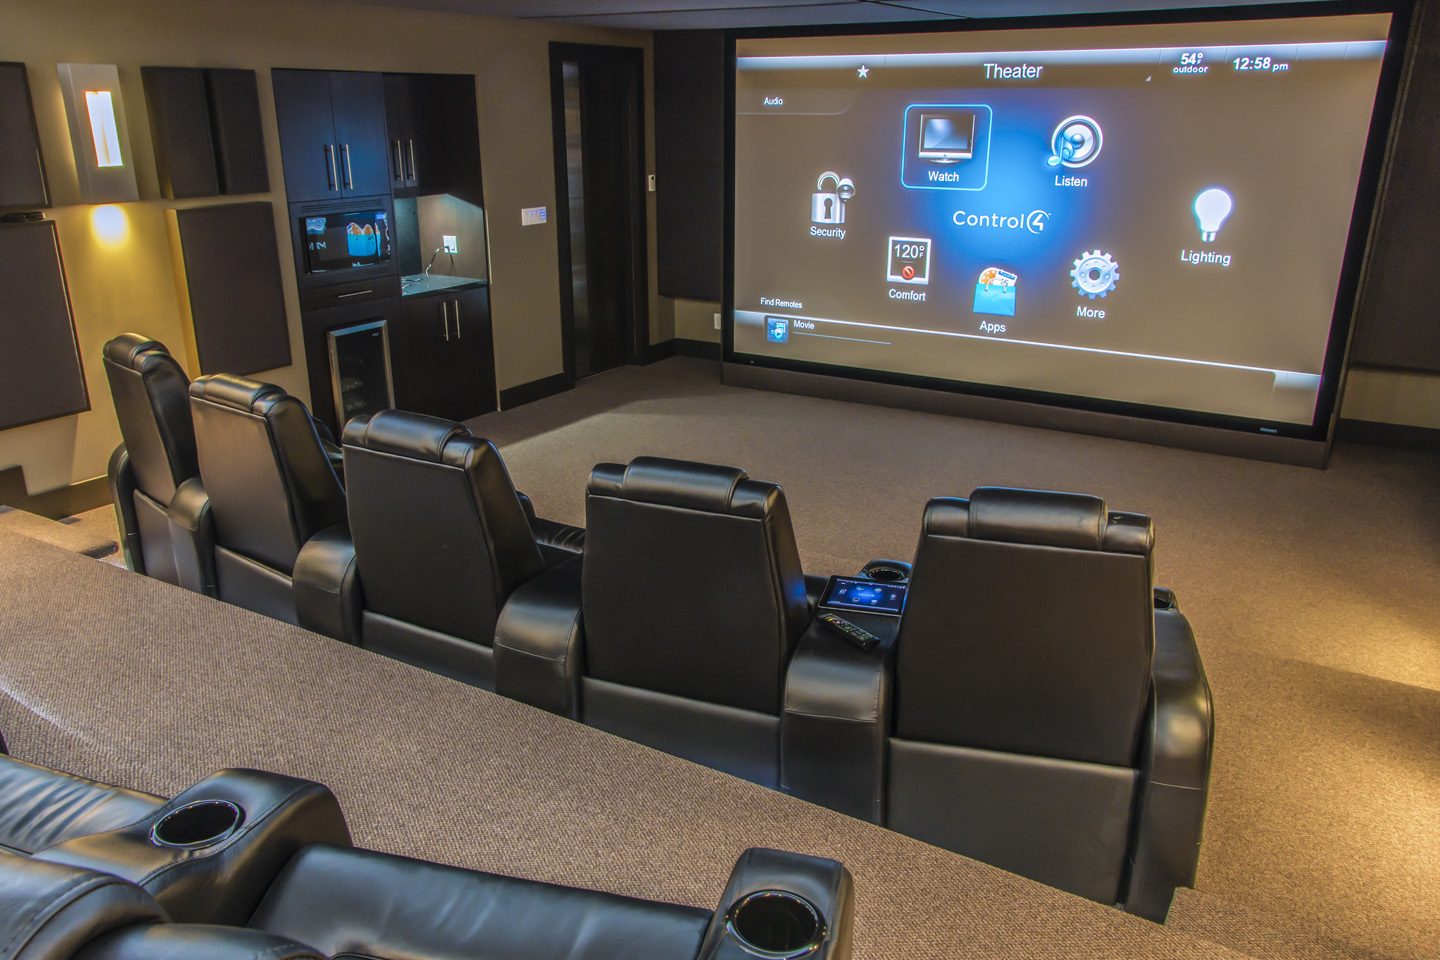 Control4 Wiring For Home Theater Great Installation Of Electrical Diagrams Smart Homes Premier Take Control Rh Premiersmarthomes Ca Setup Diagram Tv